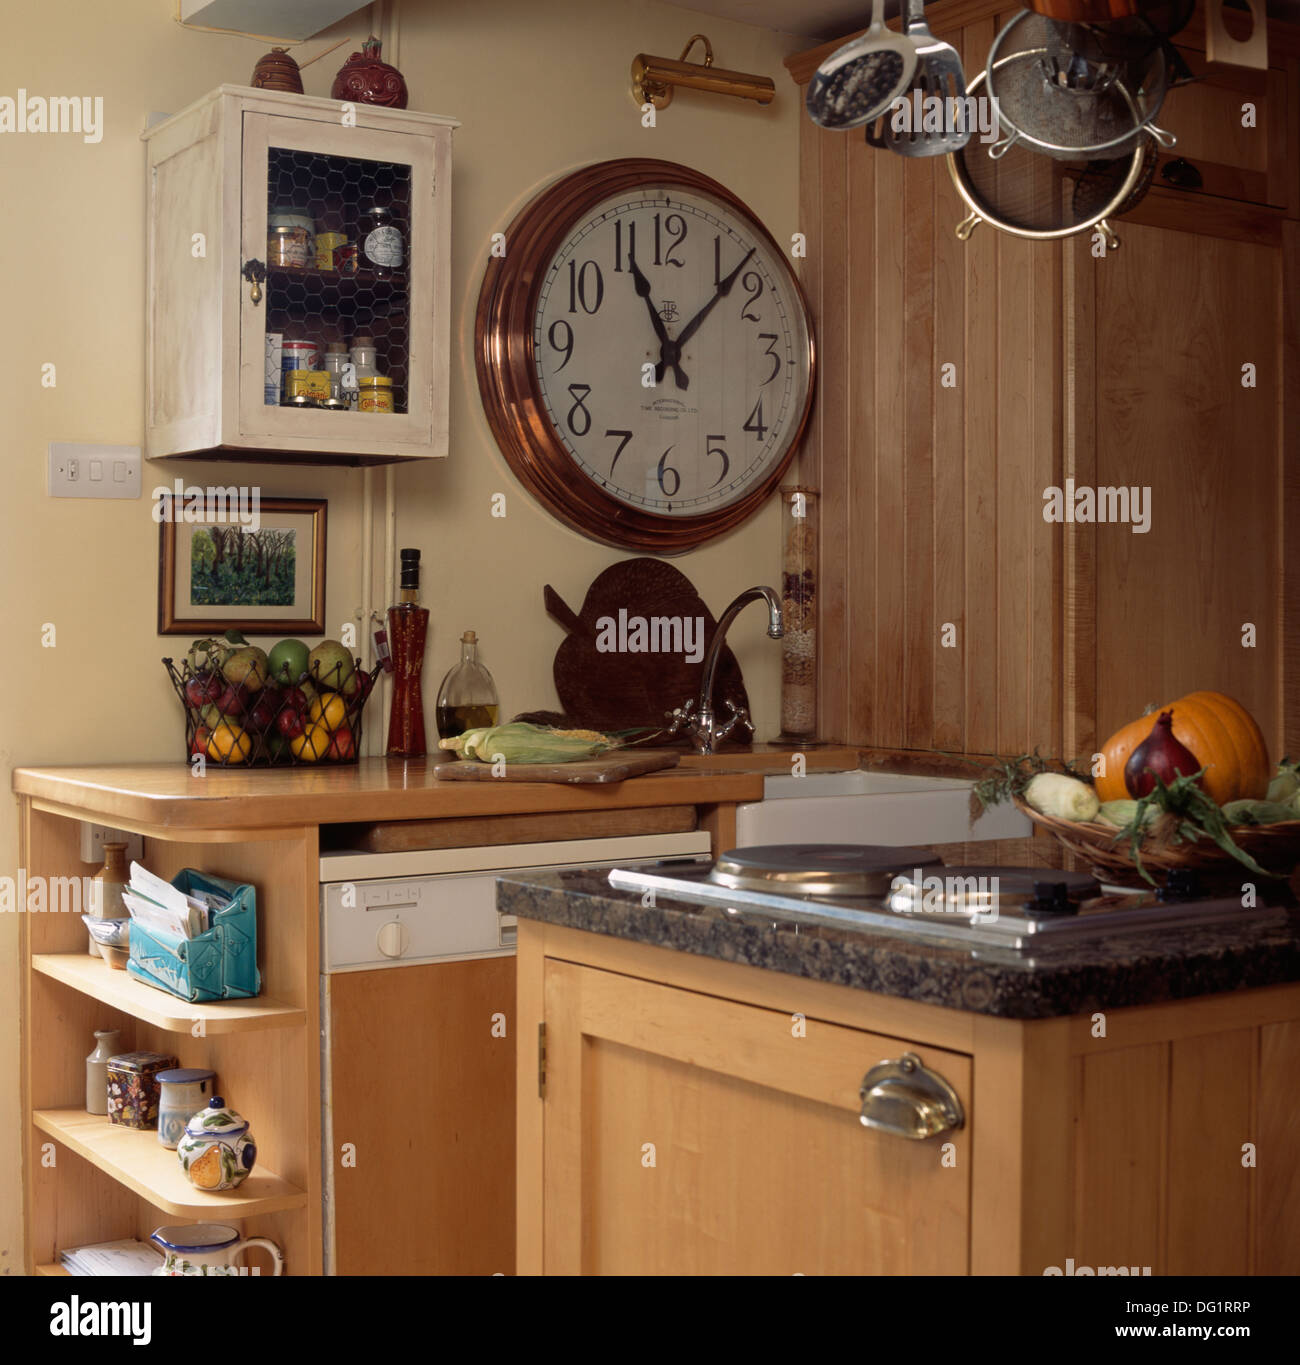 Large Copper Framed Clock And Small Cupboard Above Sink In Country Stock Photo Alamy